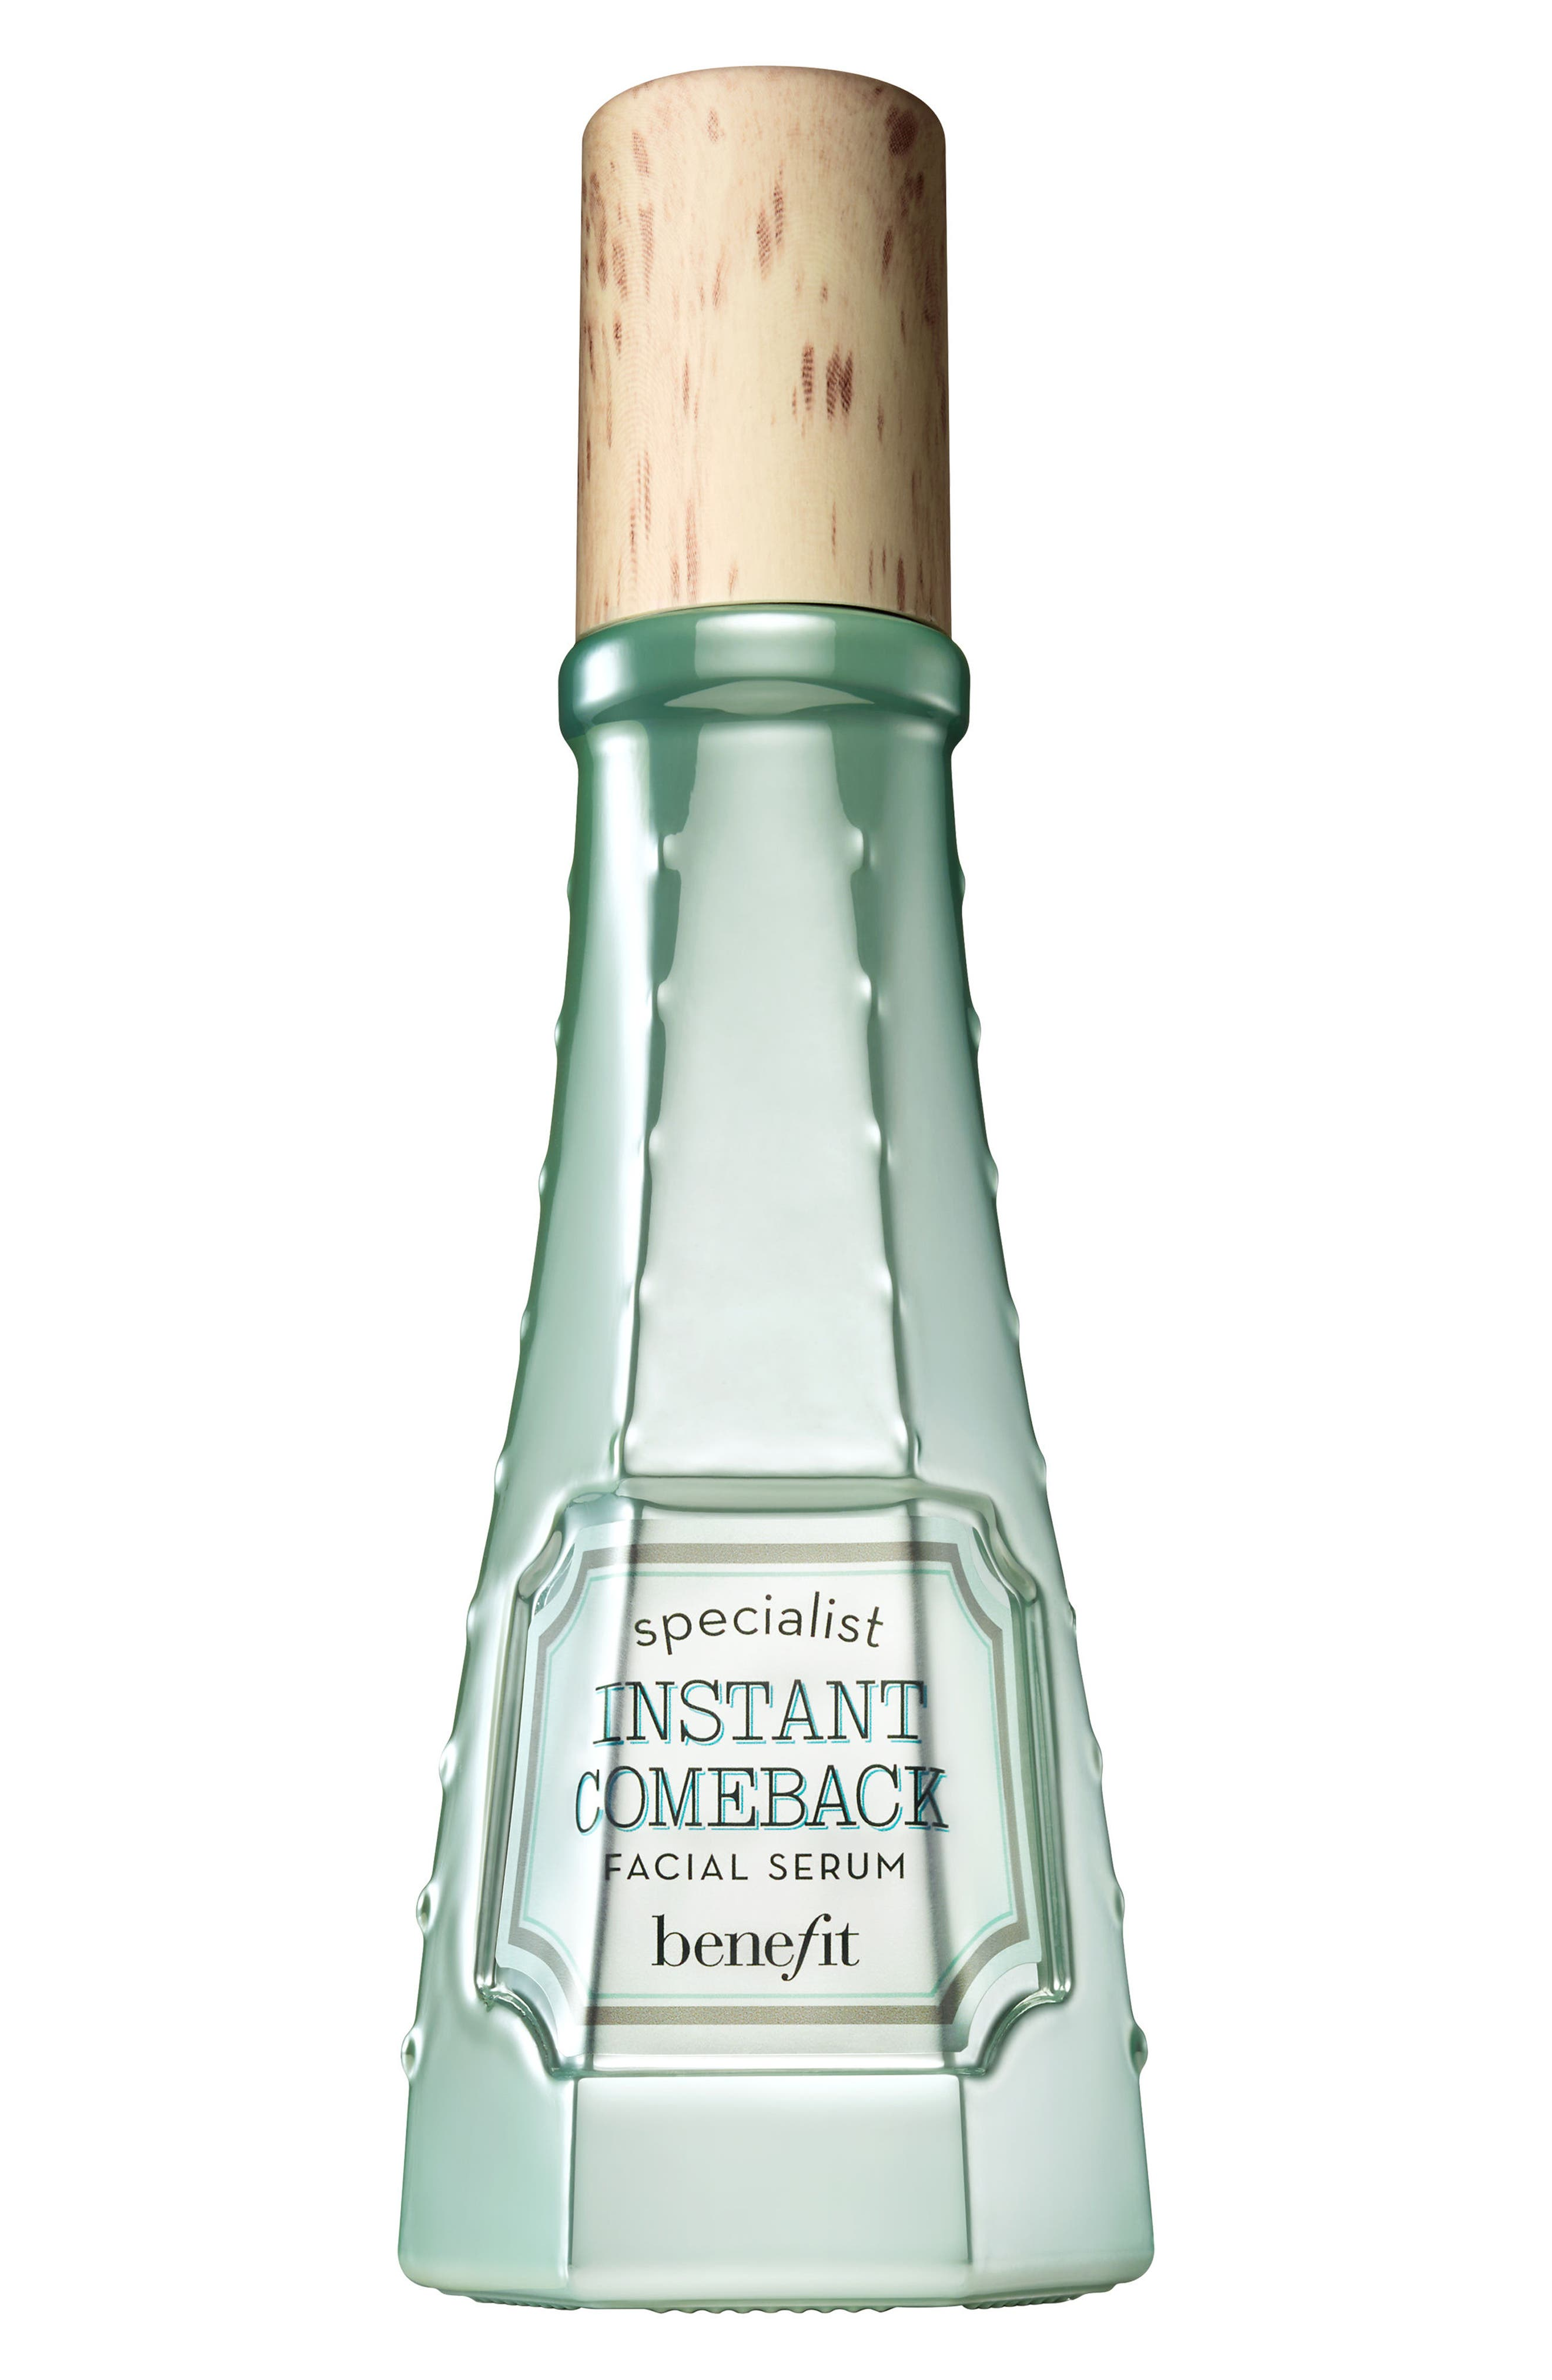 Benefit Instant Comeback Age-Defying Facial Serum,                         Main,                         color, No Color